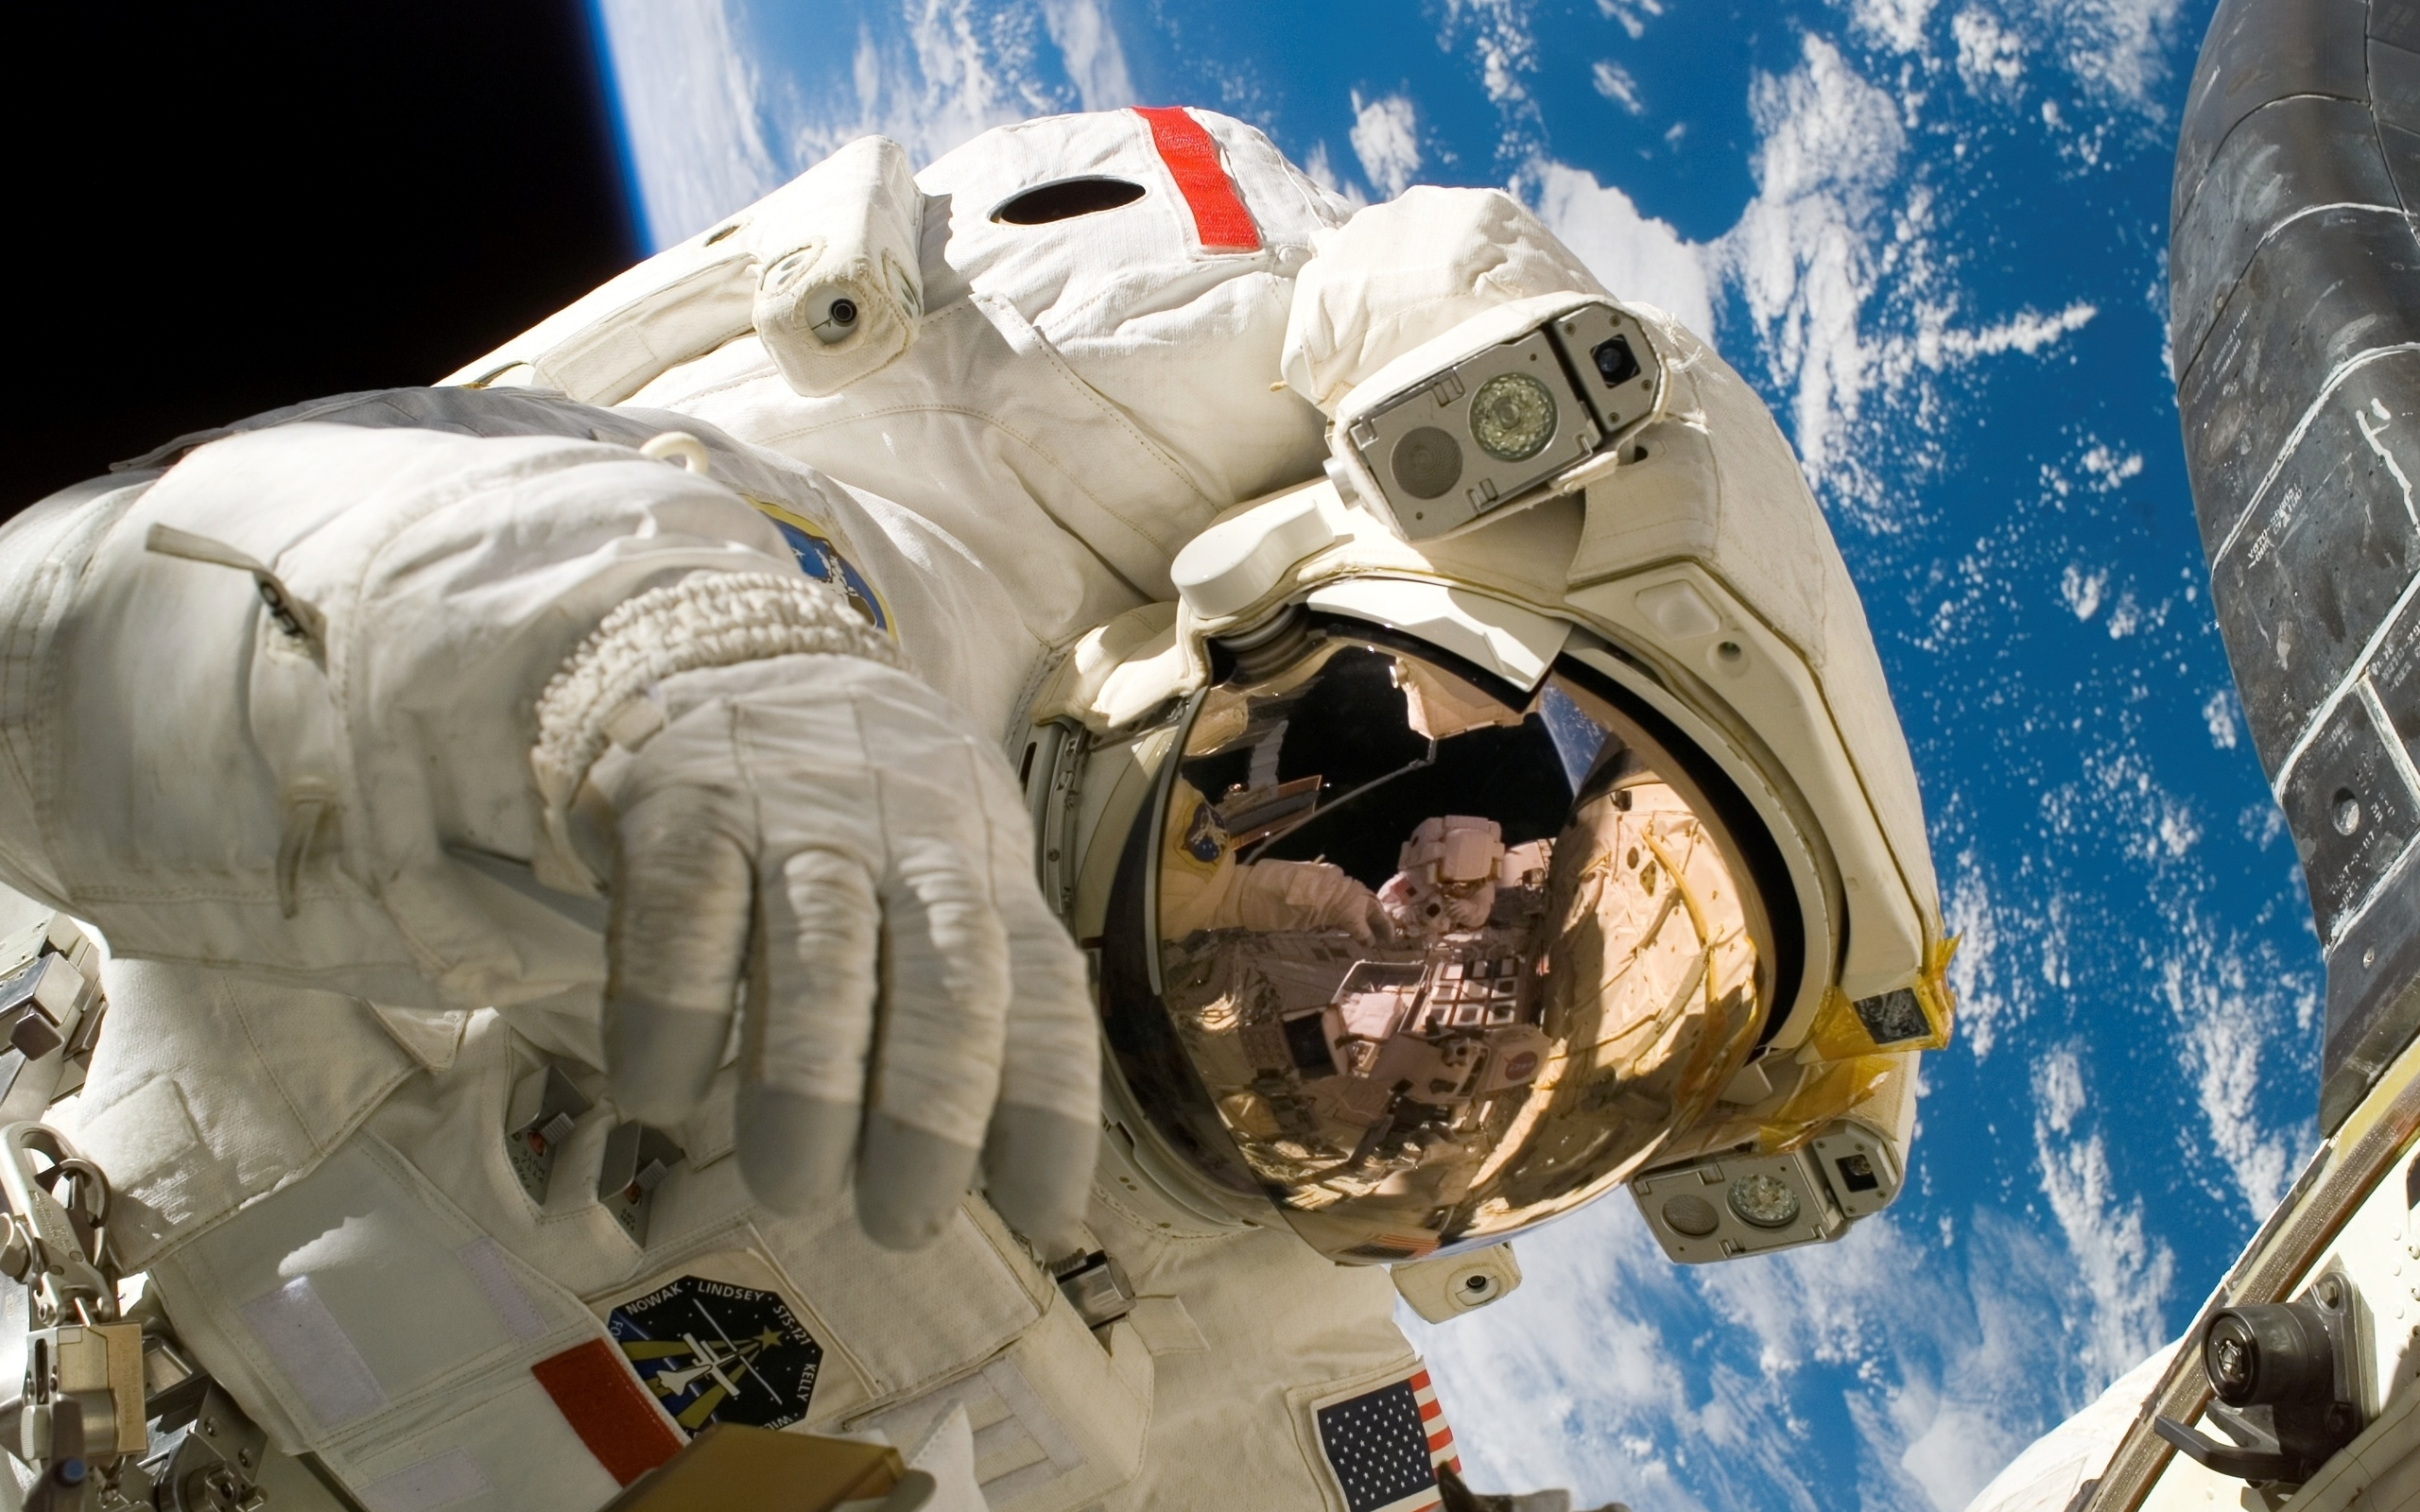 astronaut performance and health risks The astronauts must be intelligent, creative, psychologically stable and physically healthy in spaceflight missions, the primary personal attributes of a successful astronaut are emotional and psychological stability, supported by personal drive and motivation.